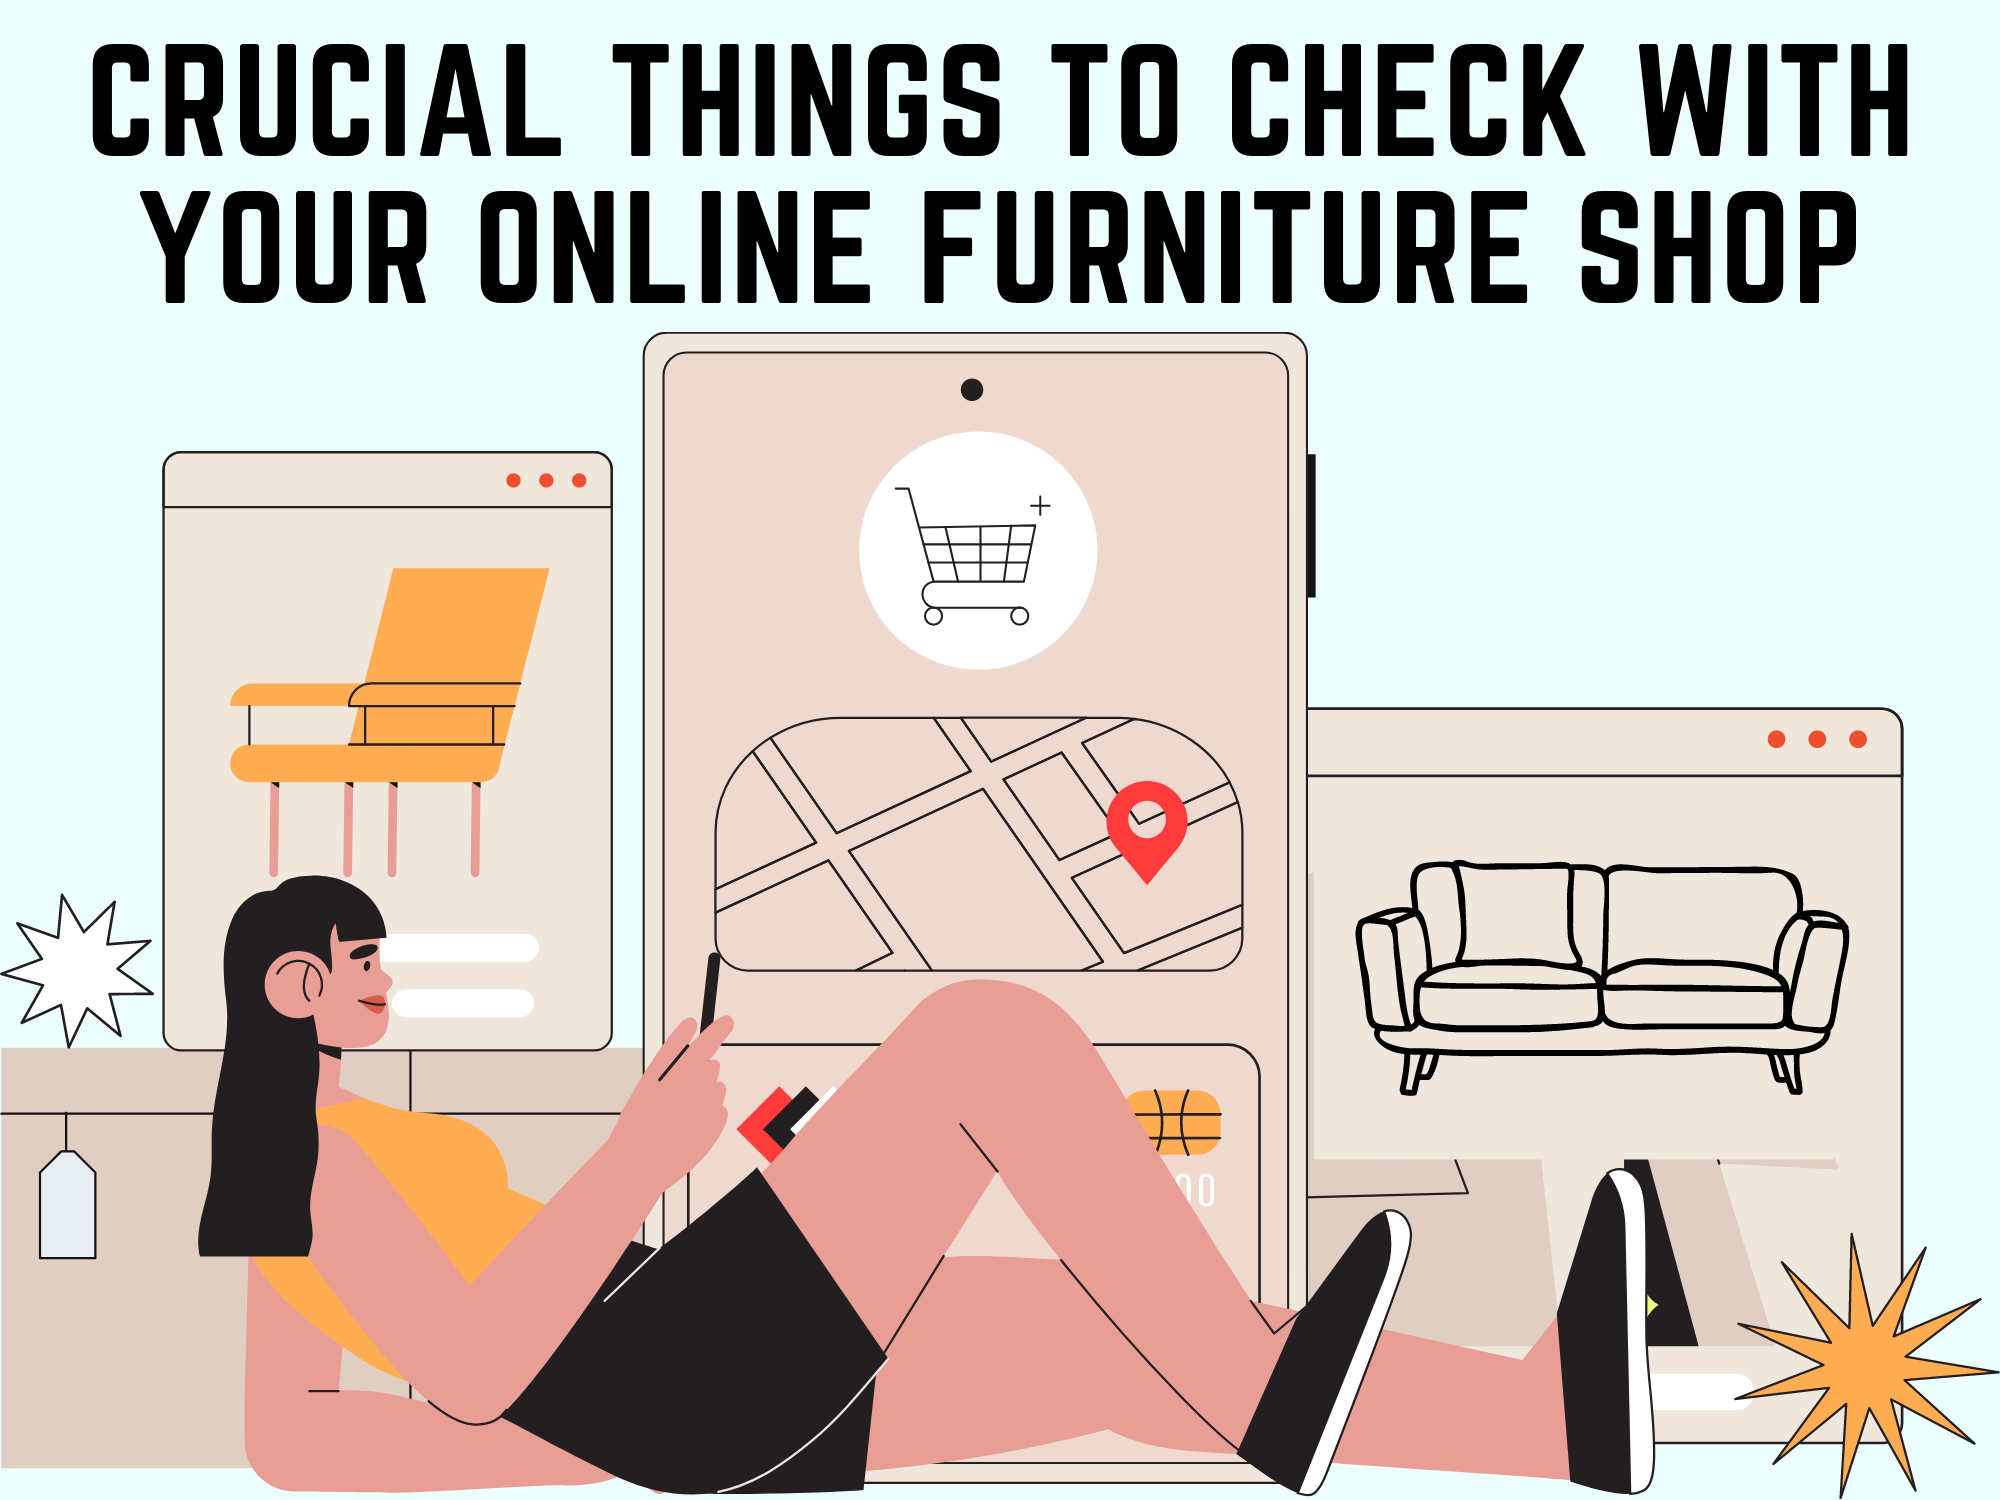 Crucial-Things-to-Check-with-Your-Online-Furniture-Shop